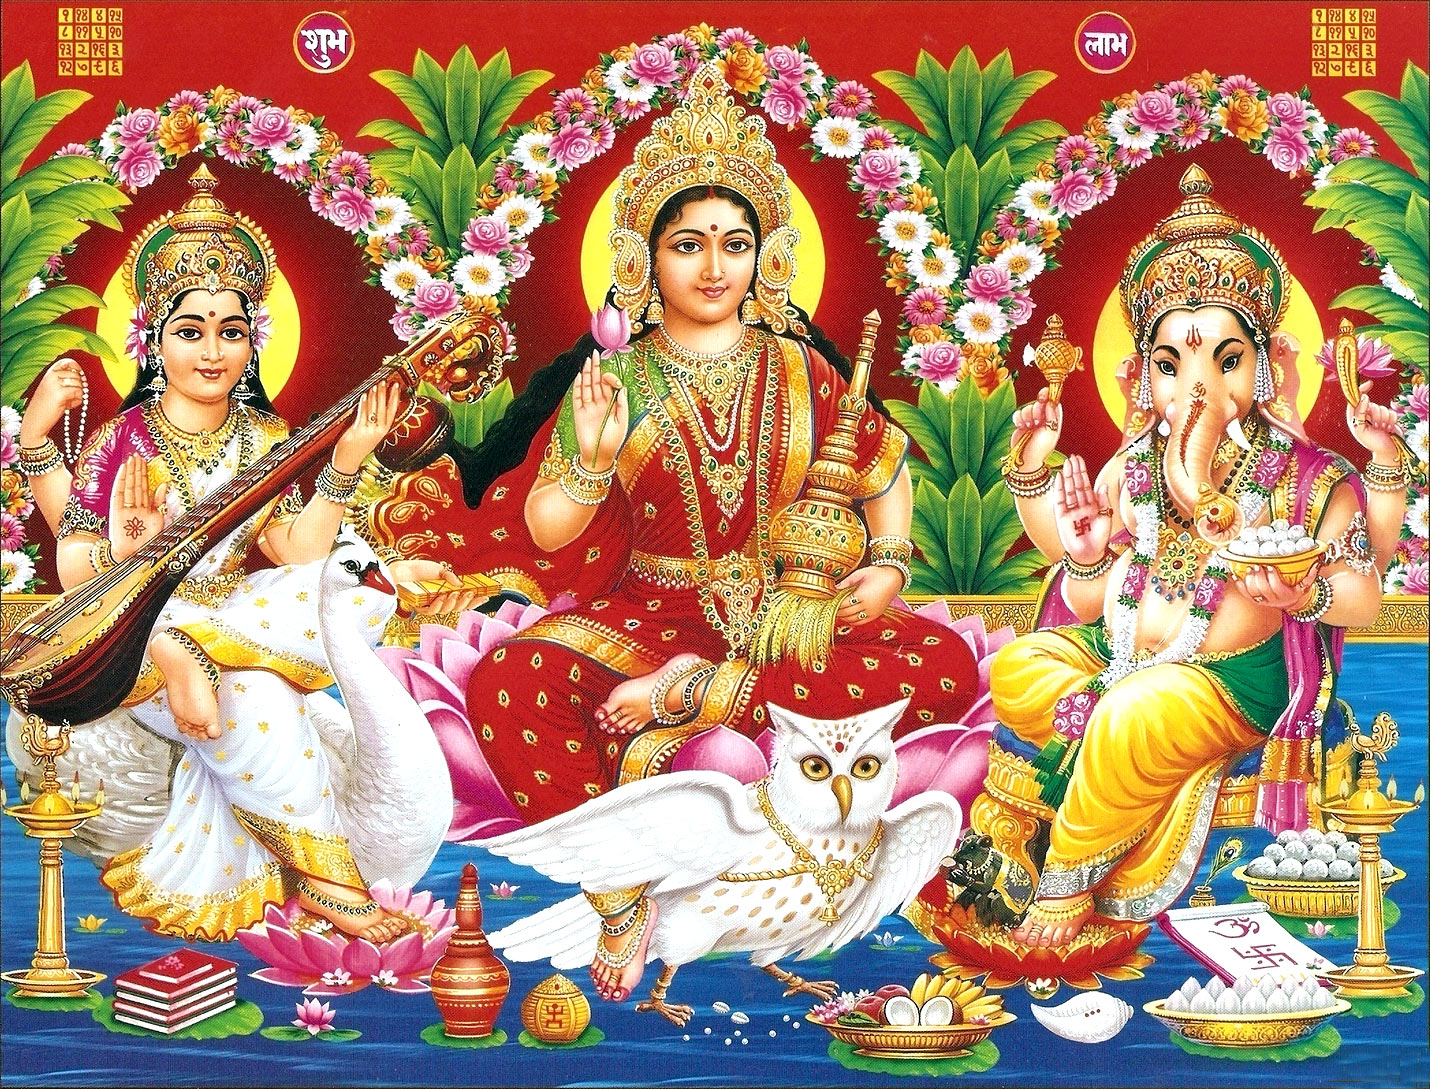 Laxmi Ganesh Saraswati Wallpaper Full Size Hd